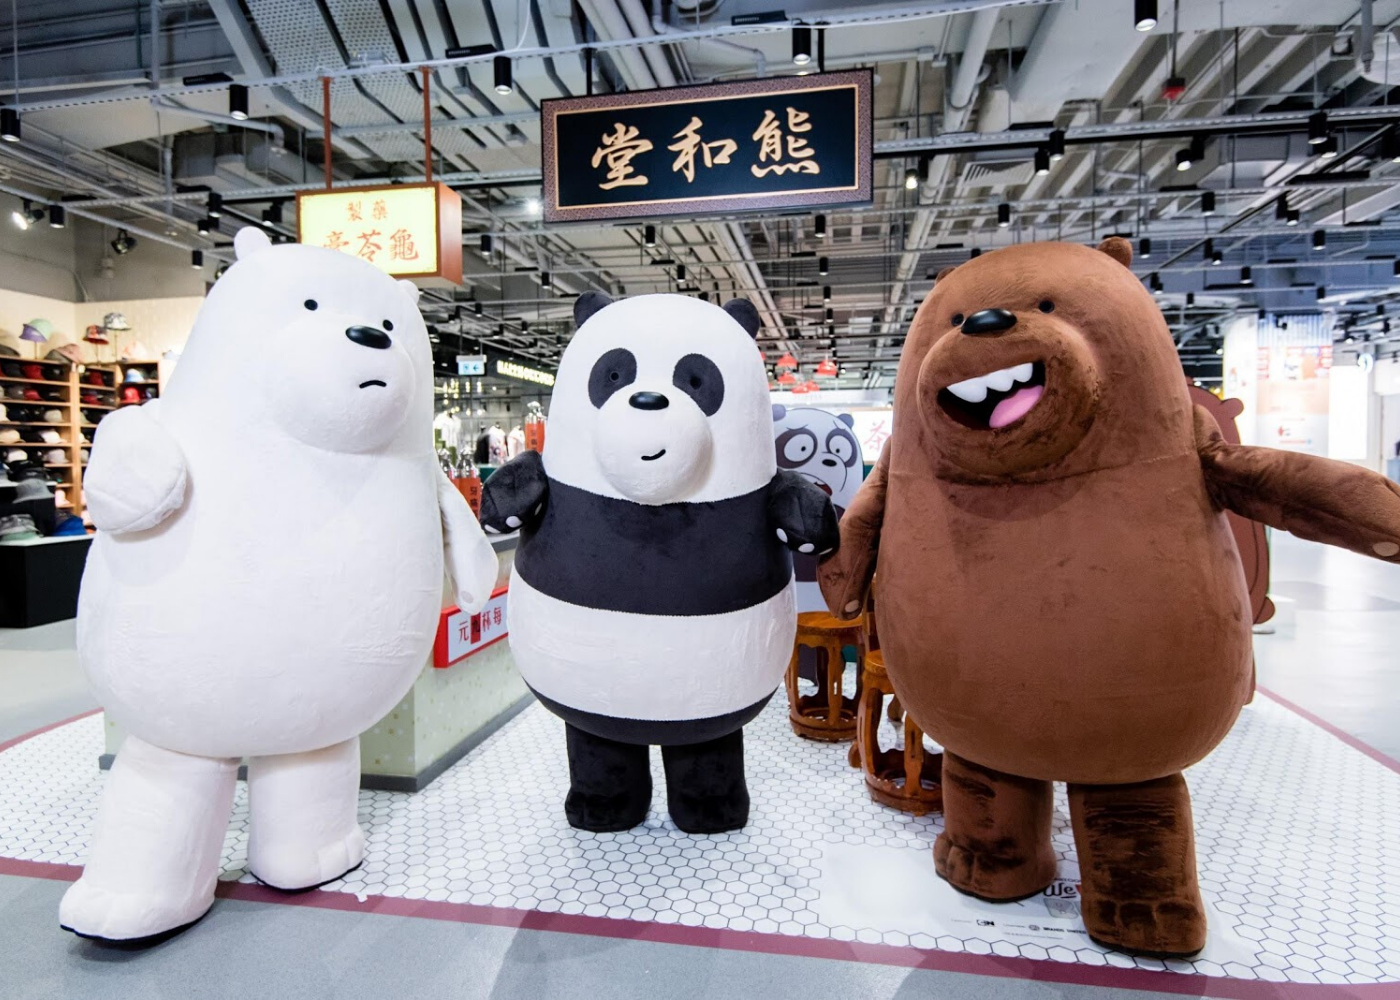 Adorable alert: We Bare Bears are spending Christmas at City Square Mall with an unmissable world premiere and more